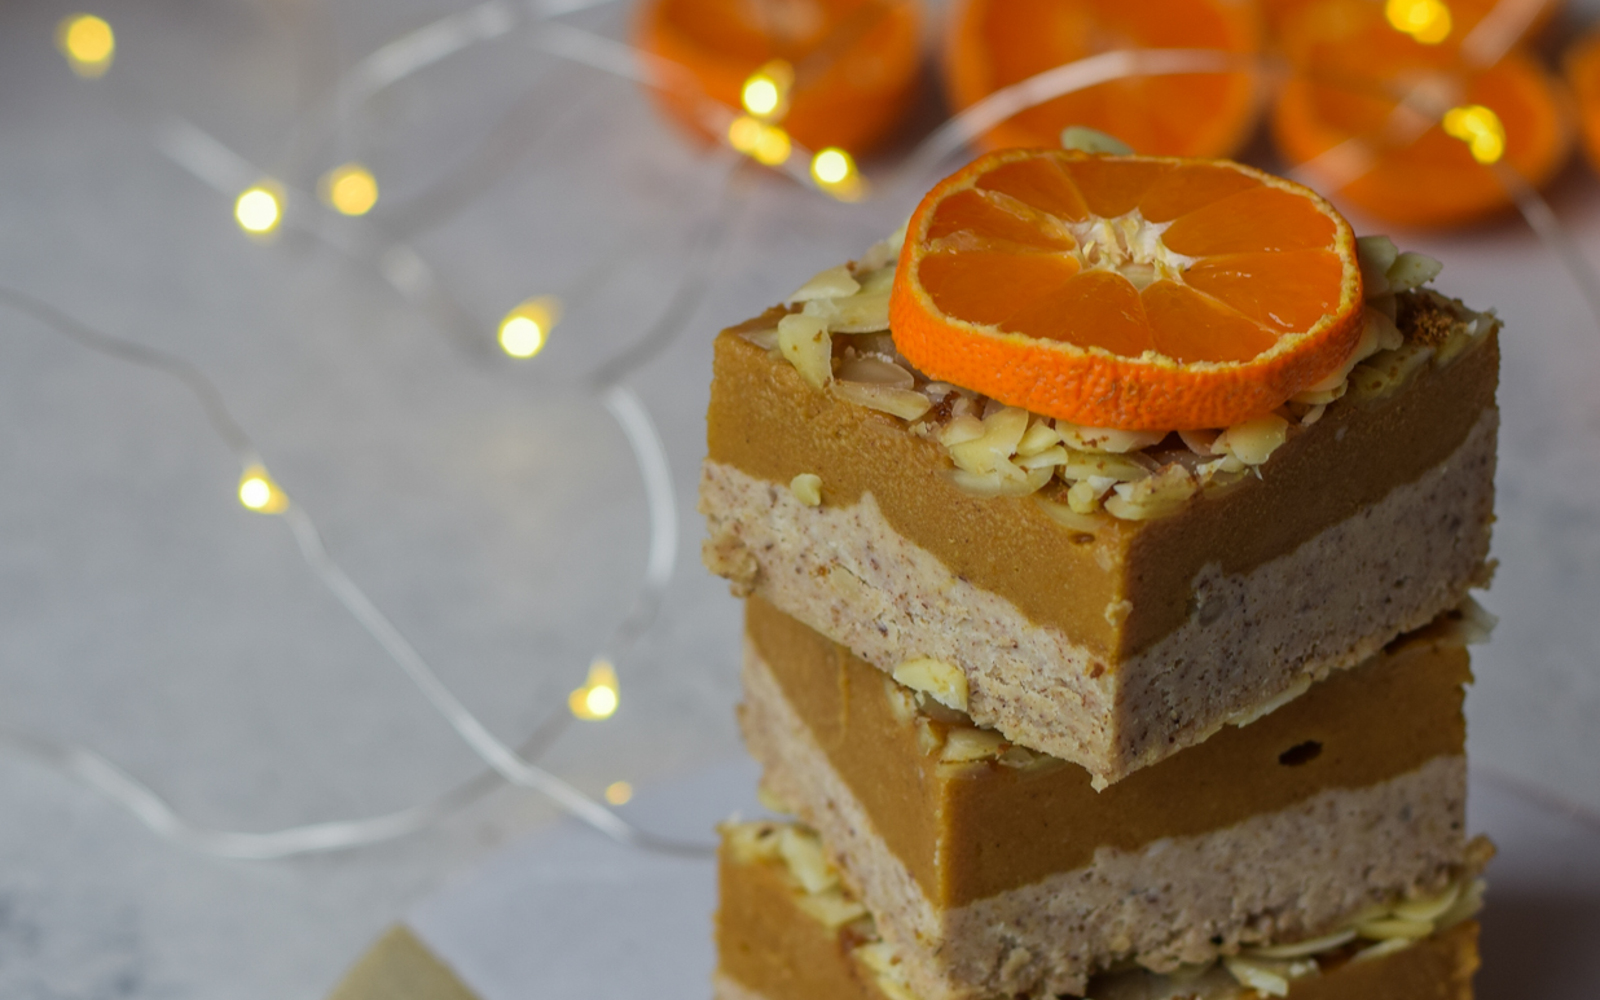 Vanilla Orange Pumpkin Bars topped with almonds and orange